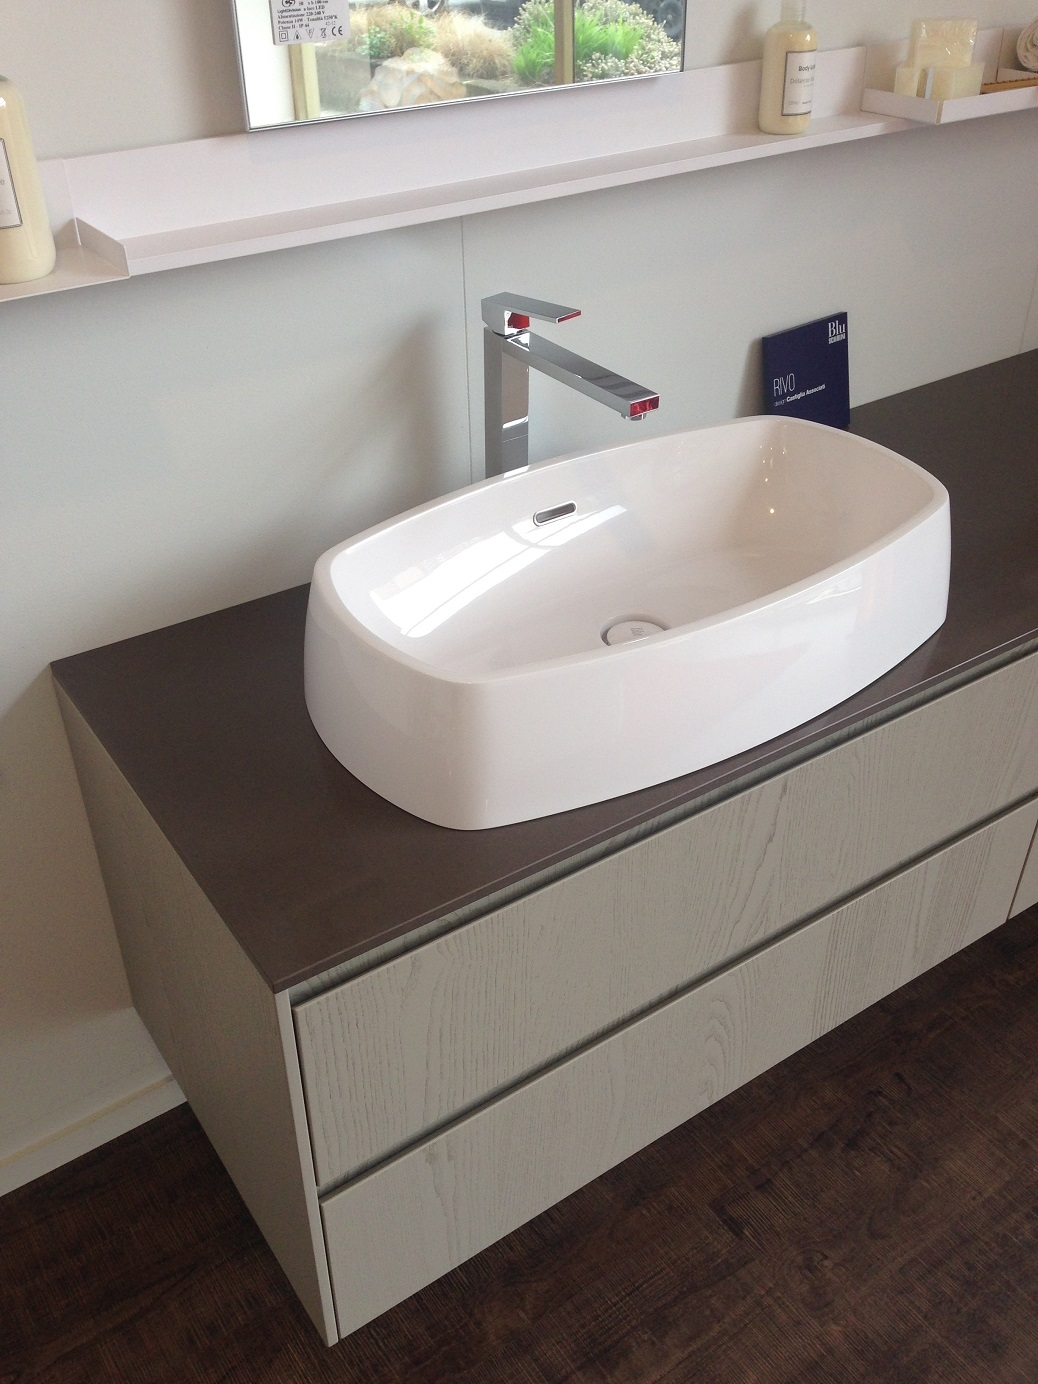 Scavolini Bathrooms  Rivo scontato del -50 %